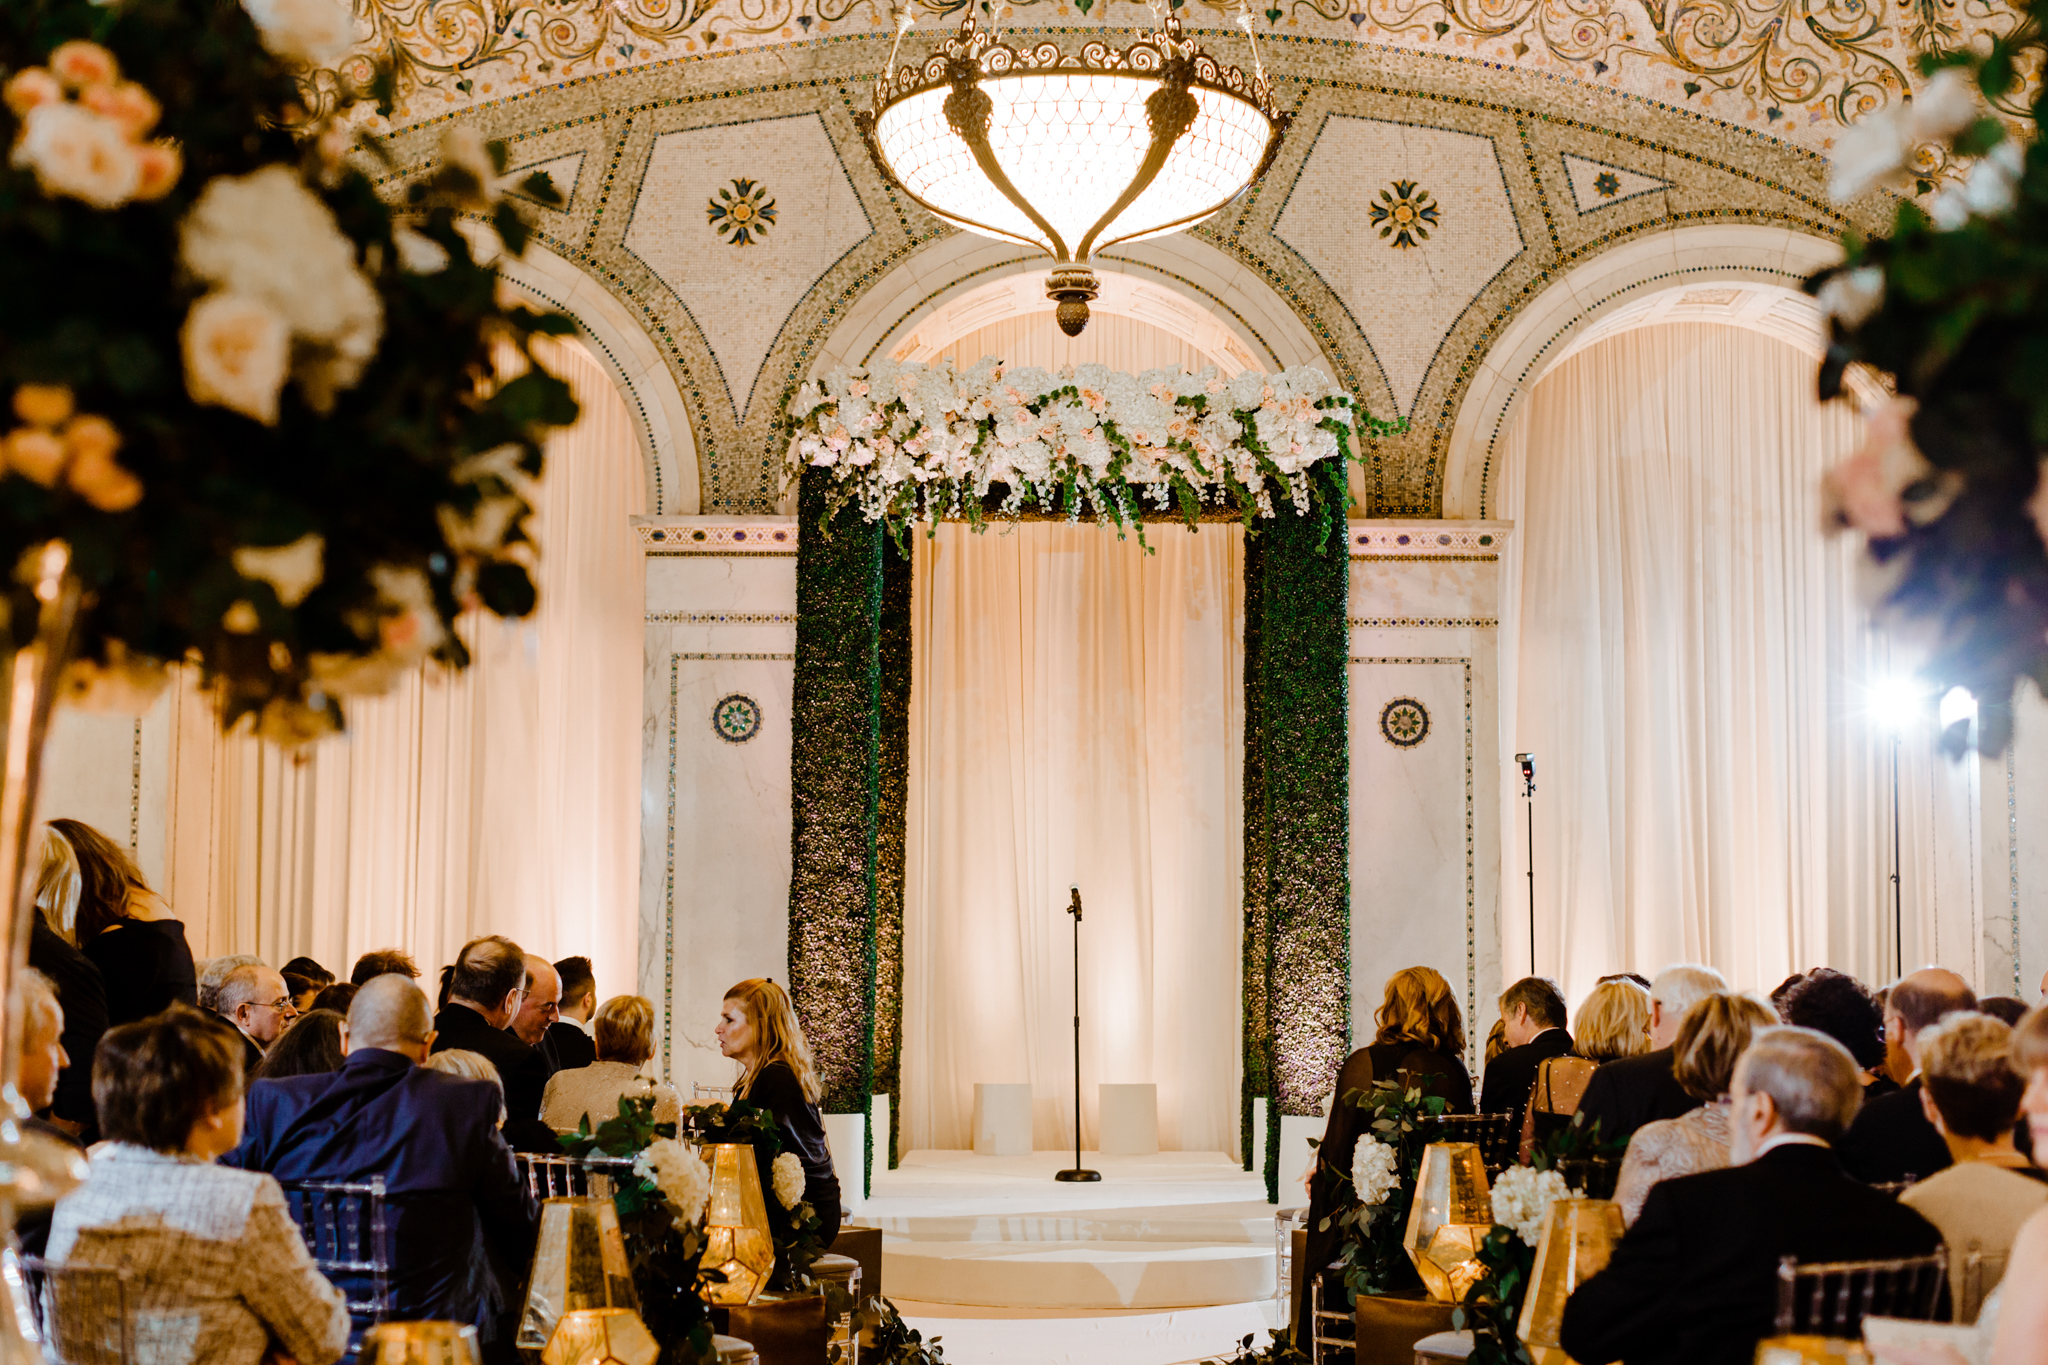 Ceremony room setup at the Chicago Cultural Center